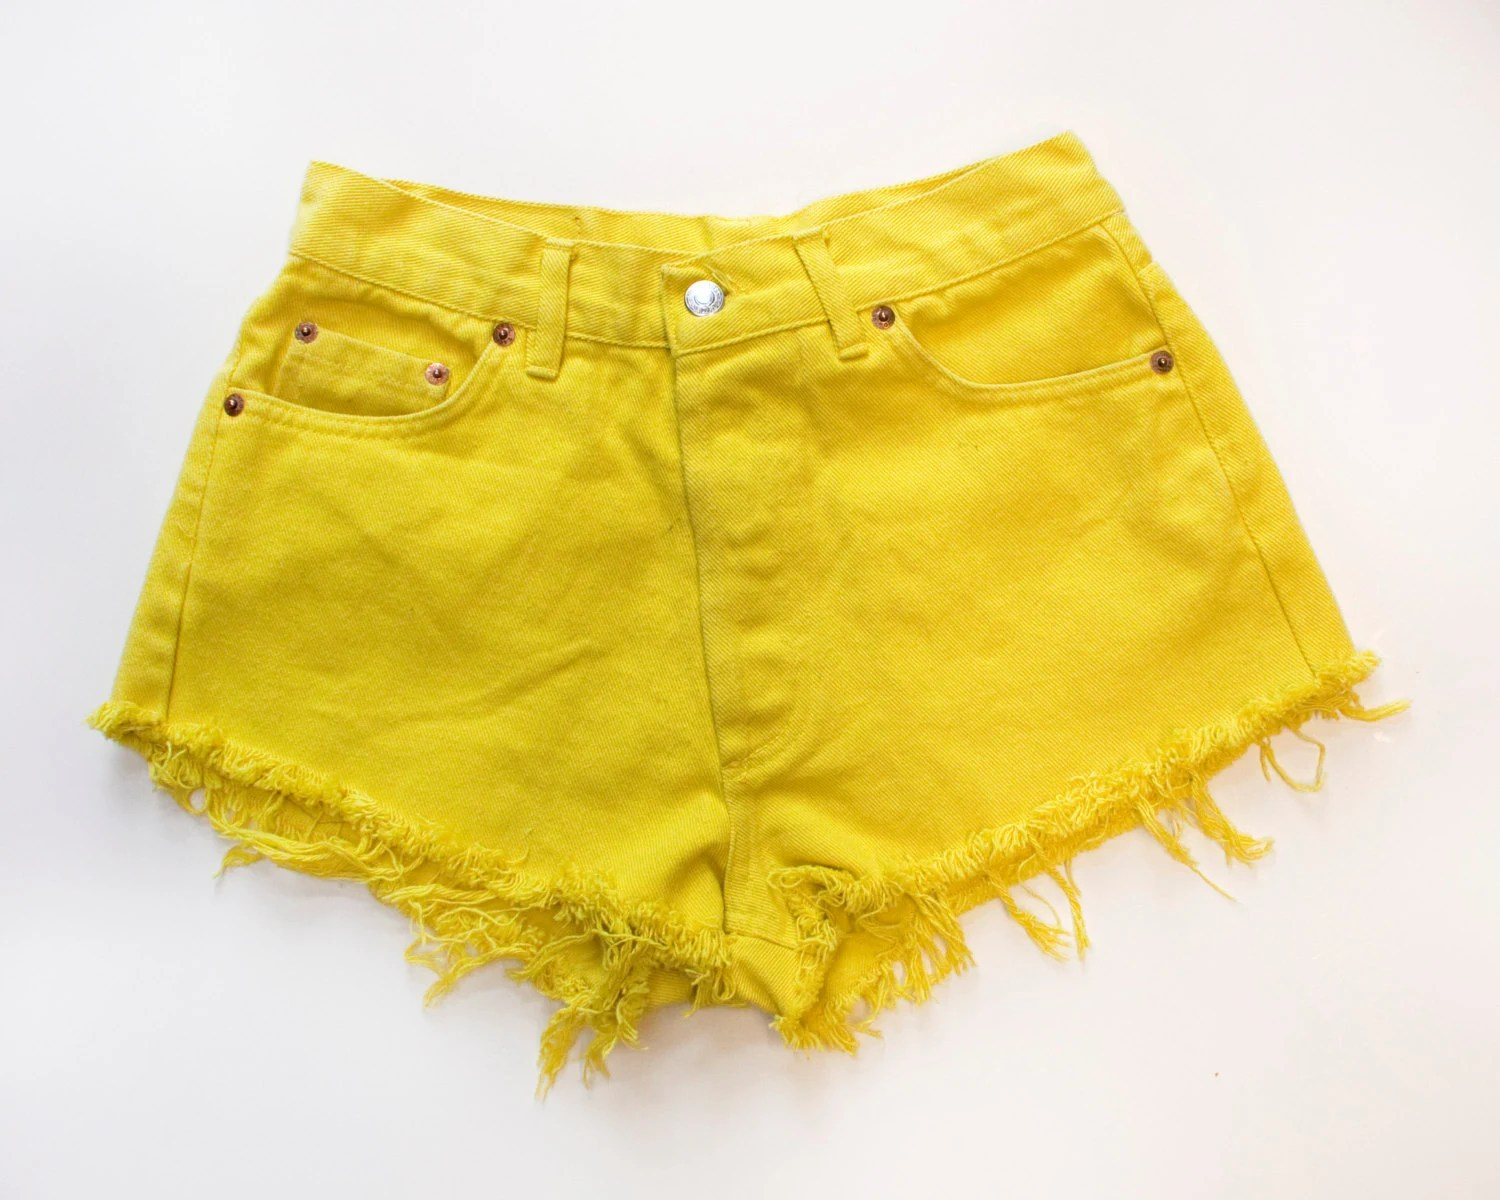 Vintage Levis 501 Unique Original Bright Yellow Cut Offs - xbangbangx